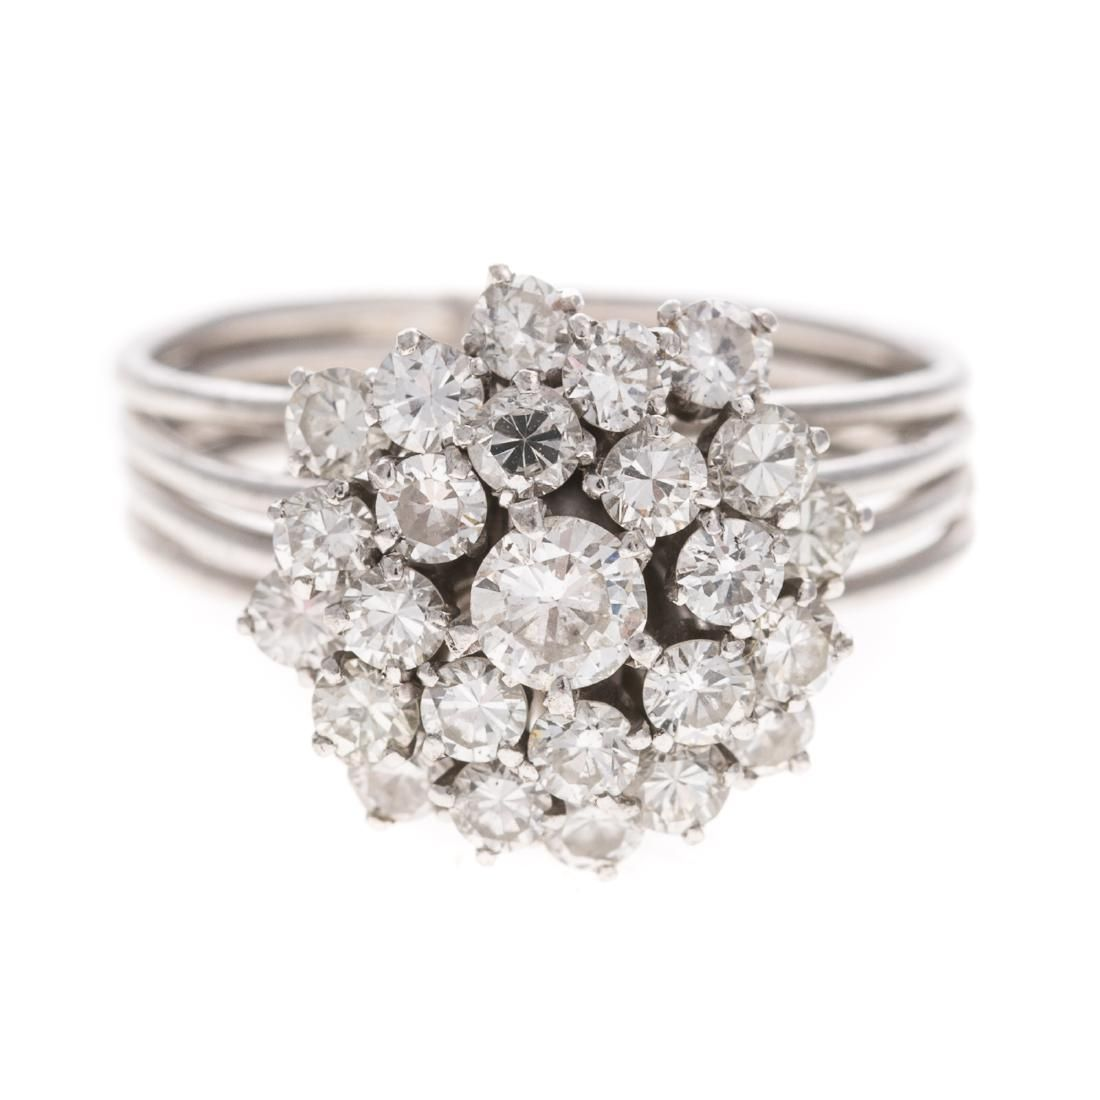 A Lady's Vintage Diamond Cocktail Ring in Platinum